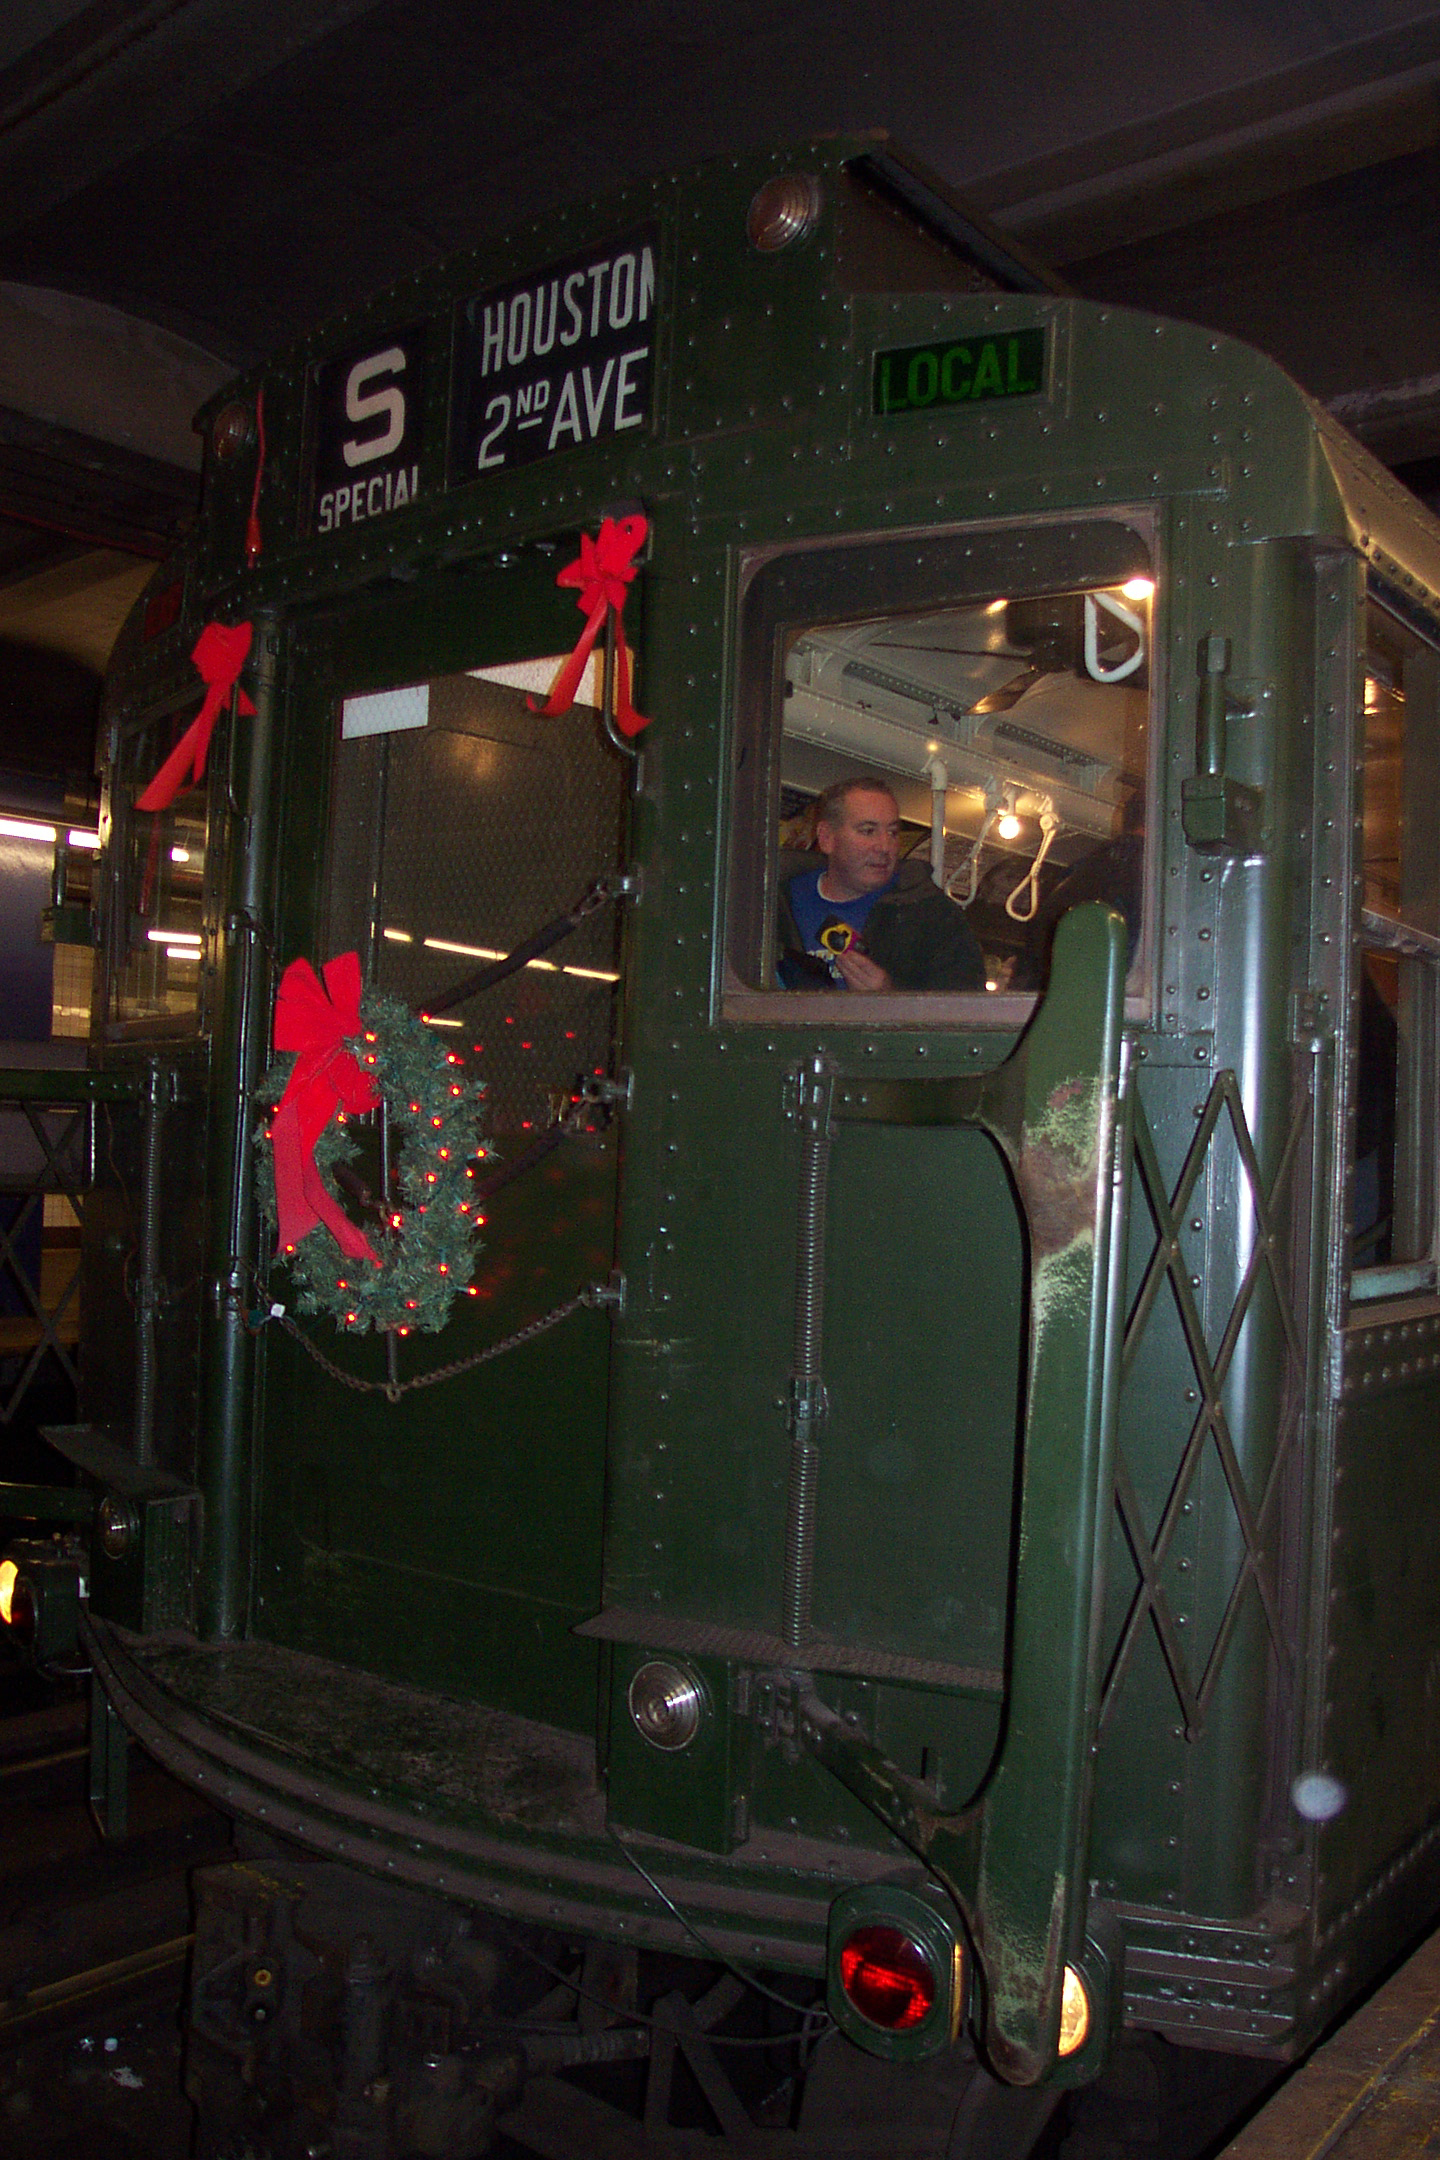 MTA Vintage Subway Car